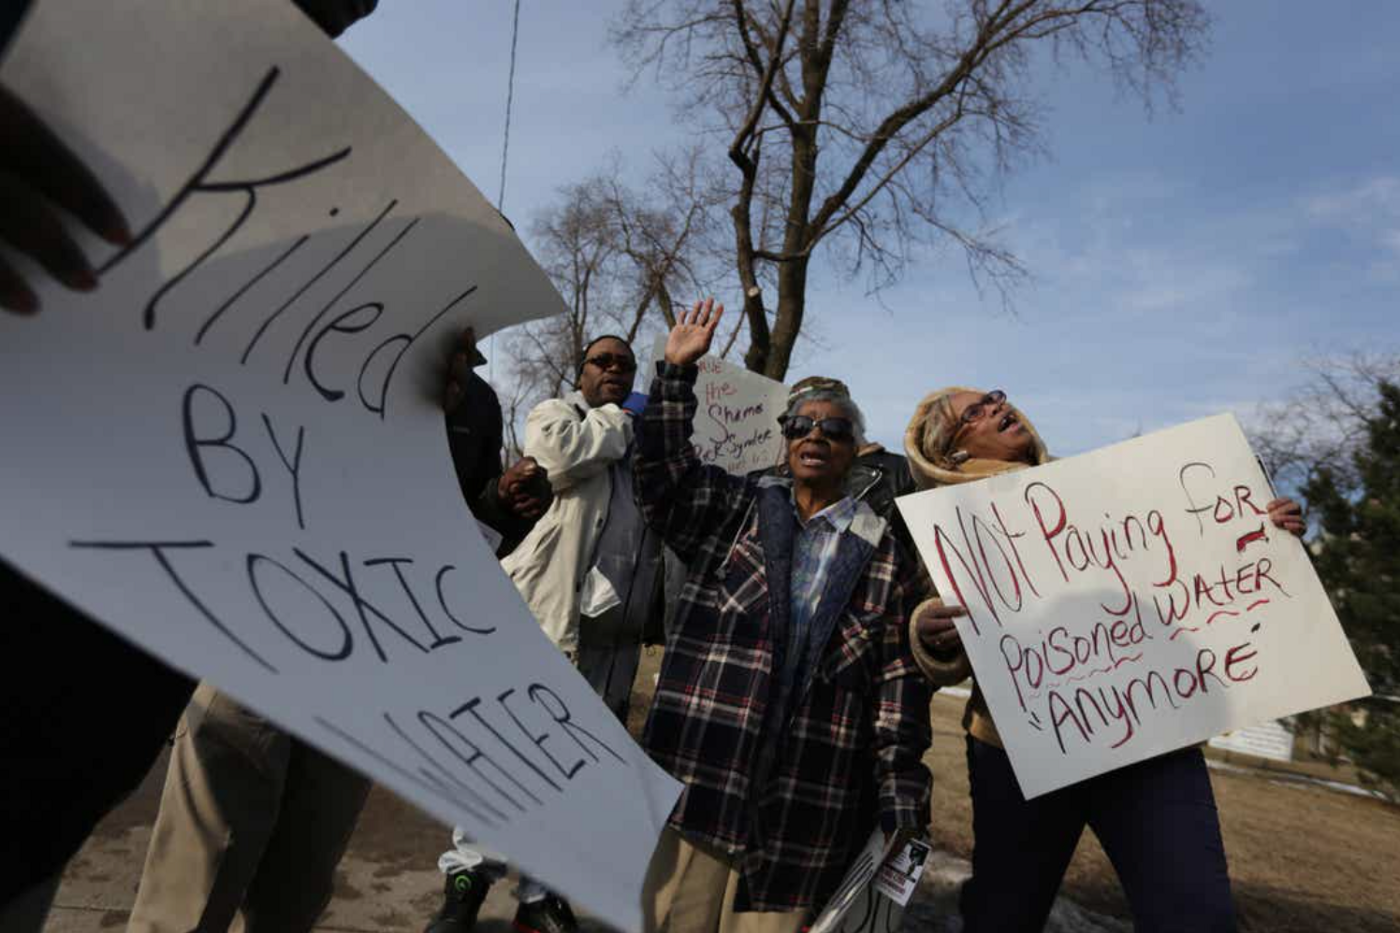 """Protesters in Flint, Michigan holding signs that read: """"Killed by toxic water"""" and """"Not paying for poisoned water anymore"""""""